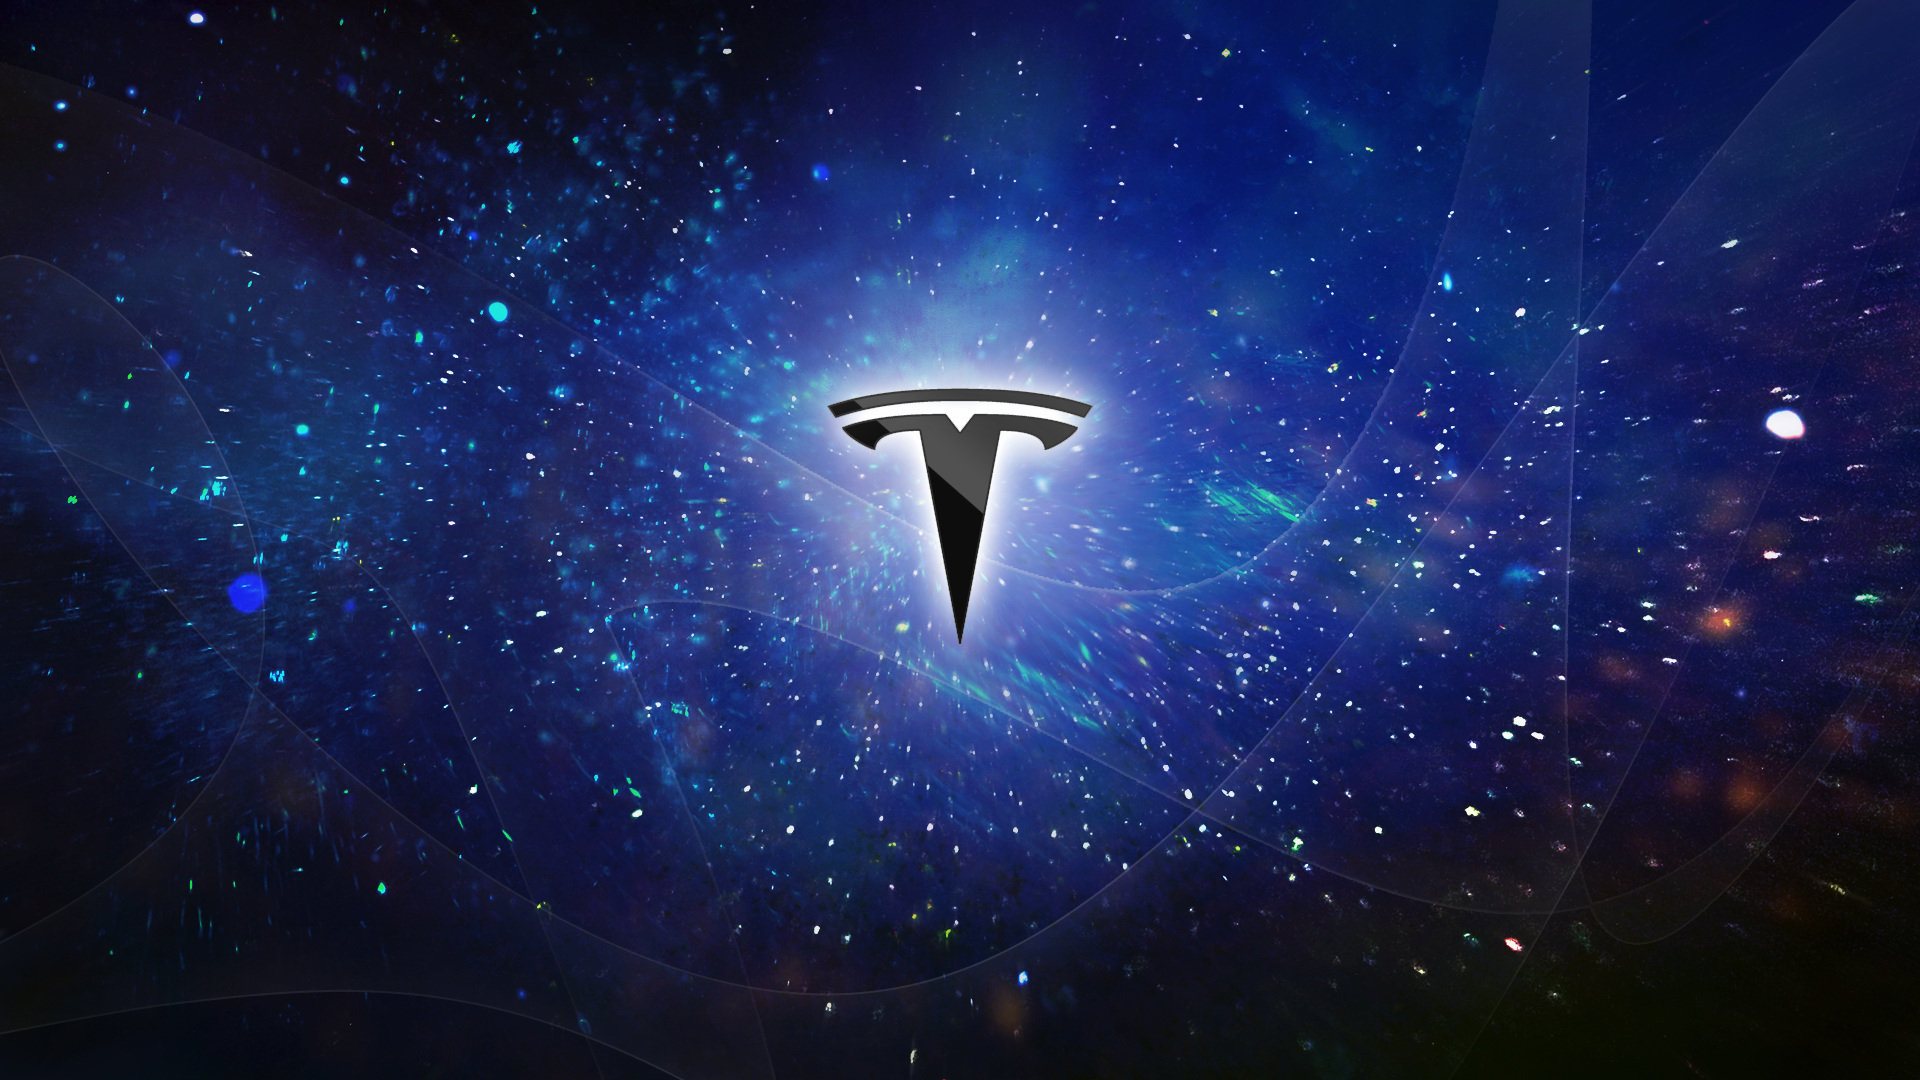 Tesla Motors logo General 1920x1080 Logo background